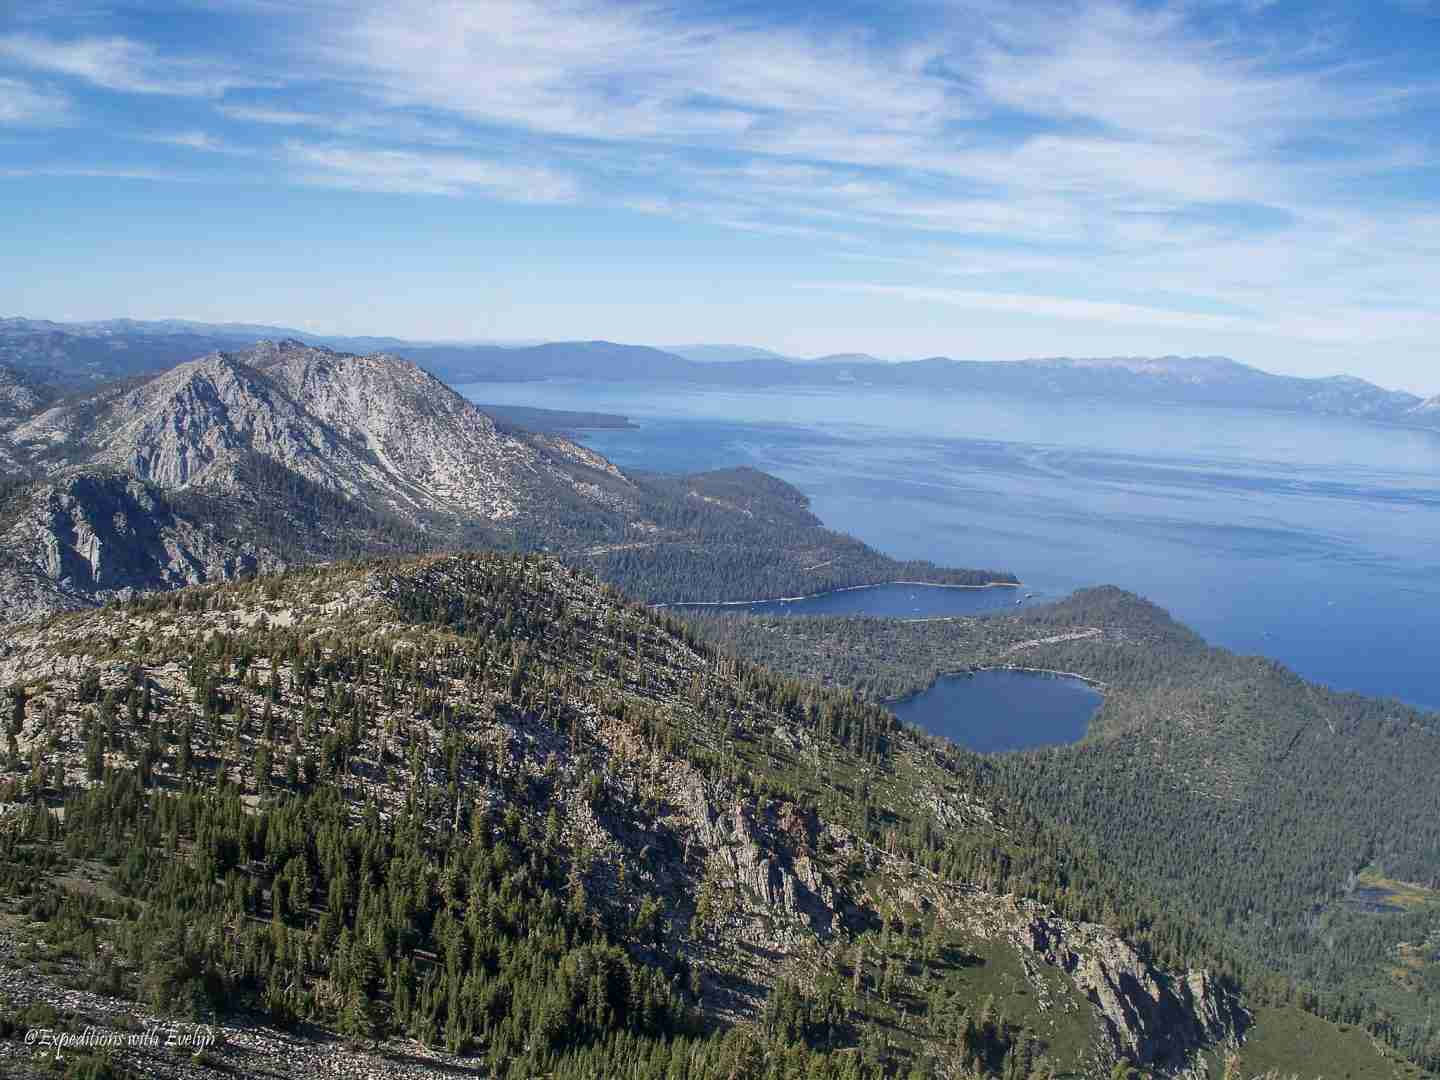 Sapphire blue Lake Tahoe and other lakes and inlets surrounded by other gray mountains covered in pine trees from the summit of Mount Tallac.